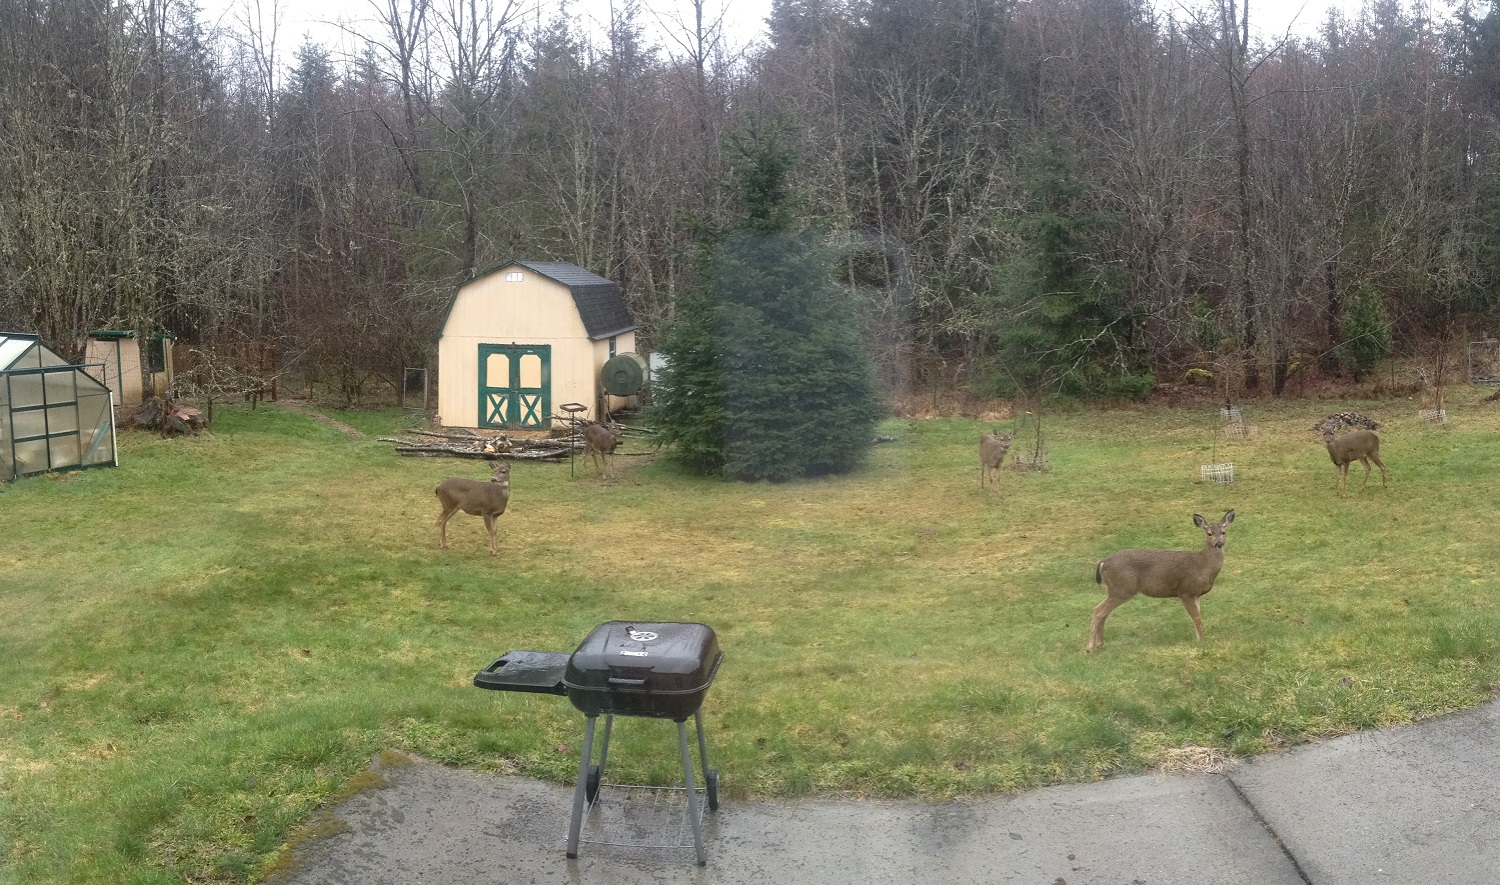 Six deer in the backyard